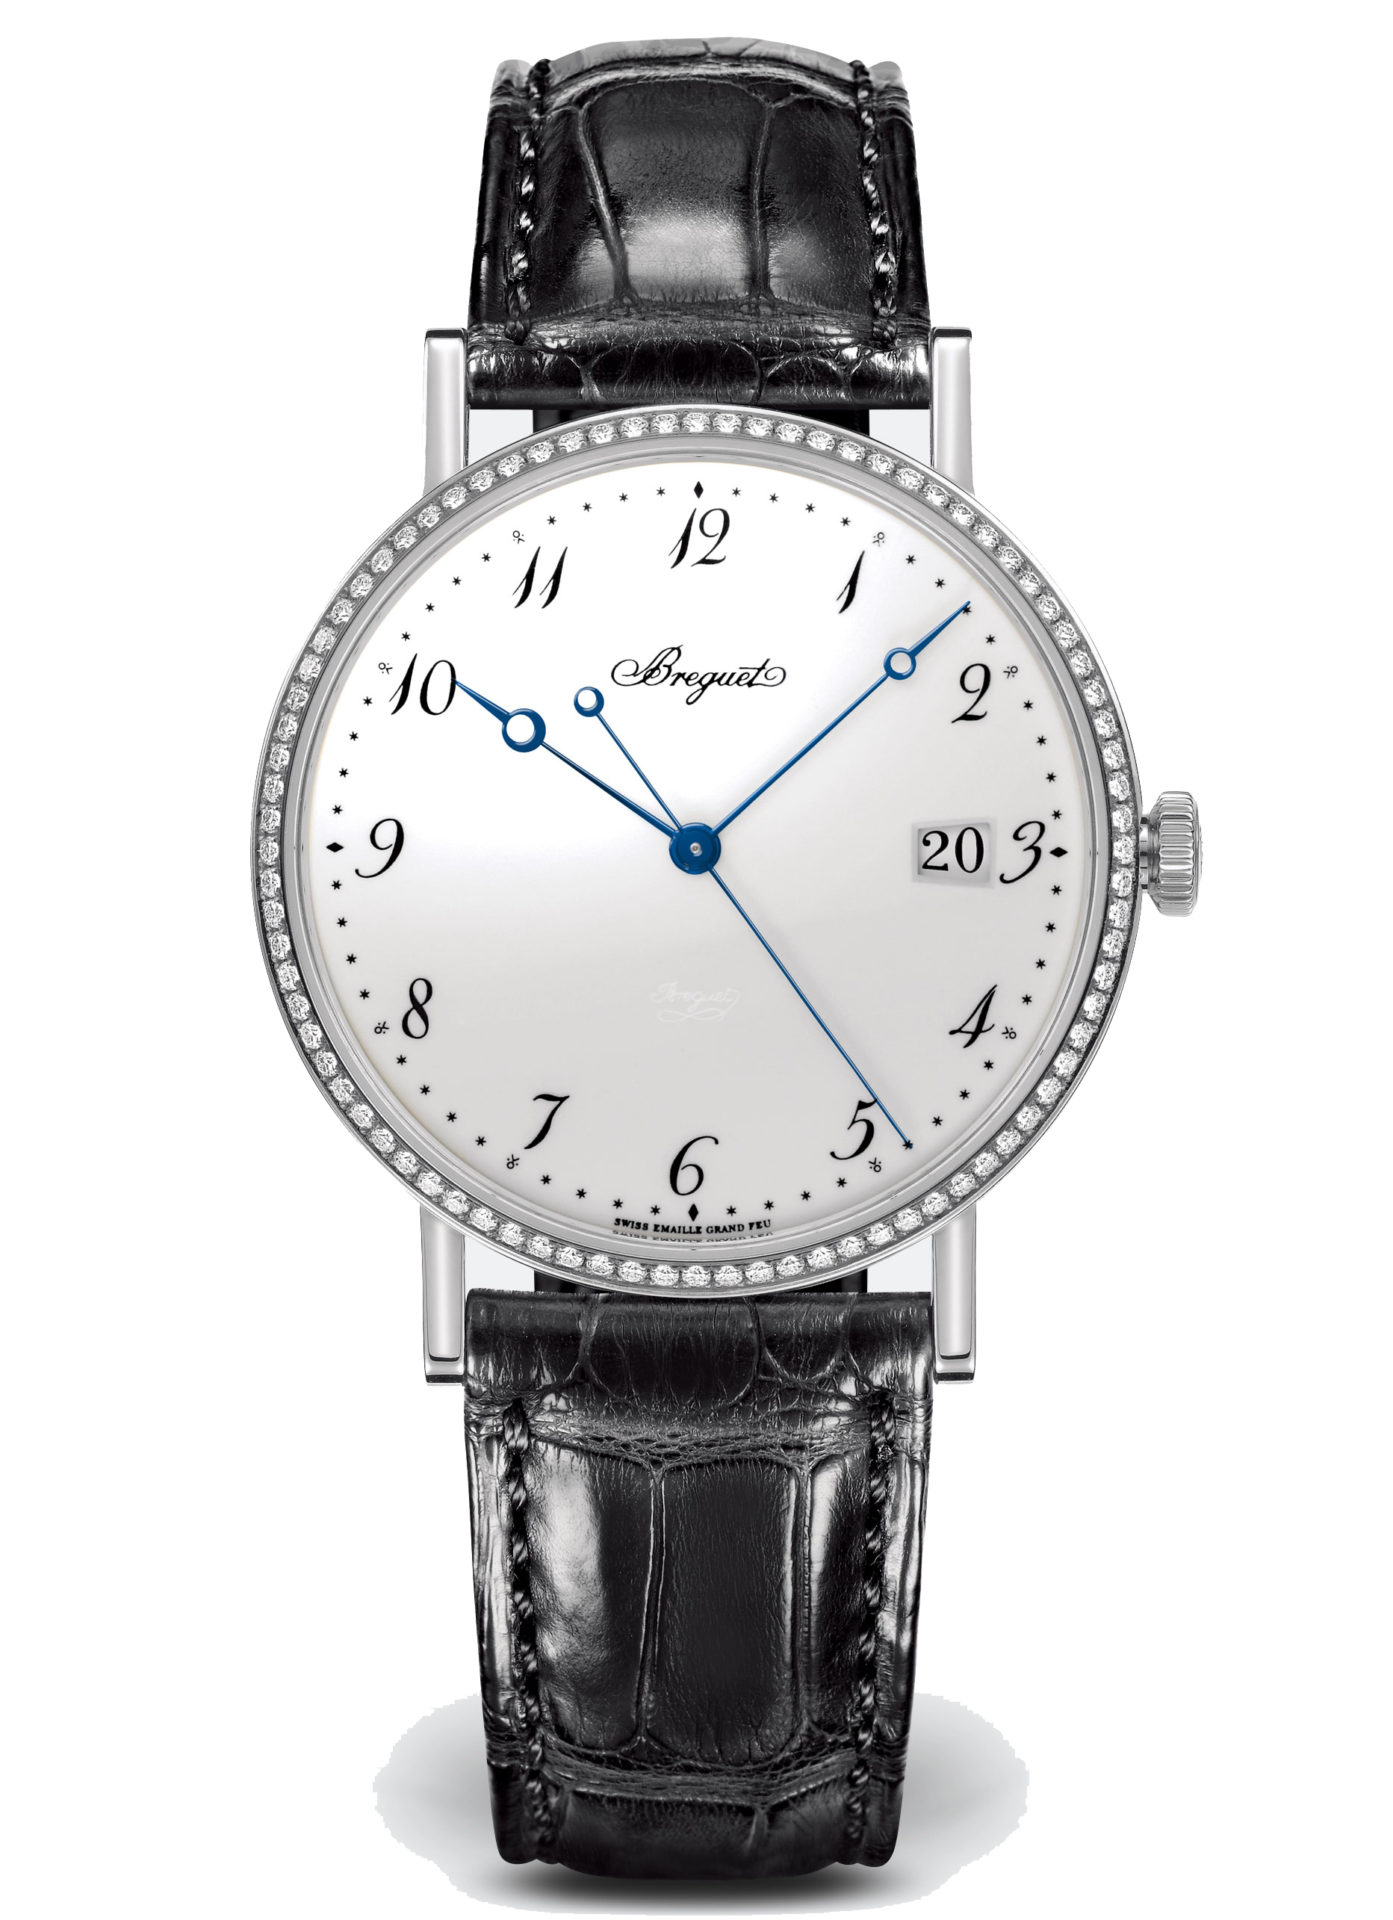 Breguet-Classique-5178-Hall-of-Time-5178bb-29-9v6-d000 copie